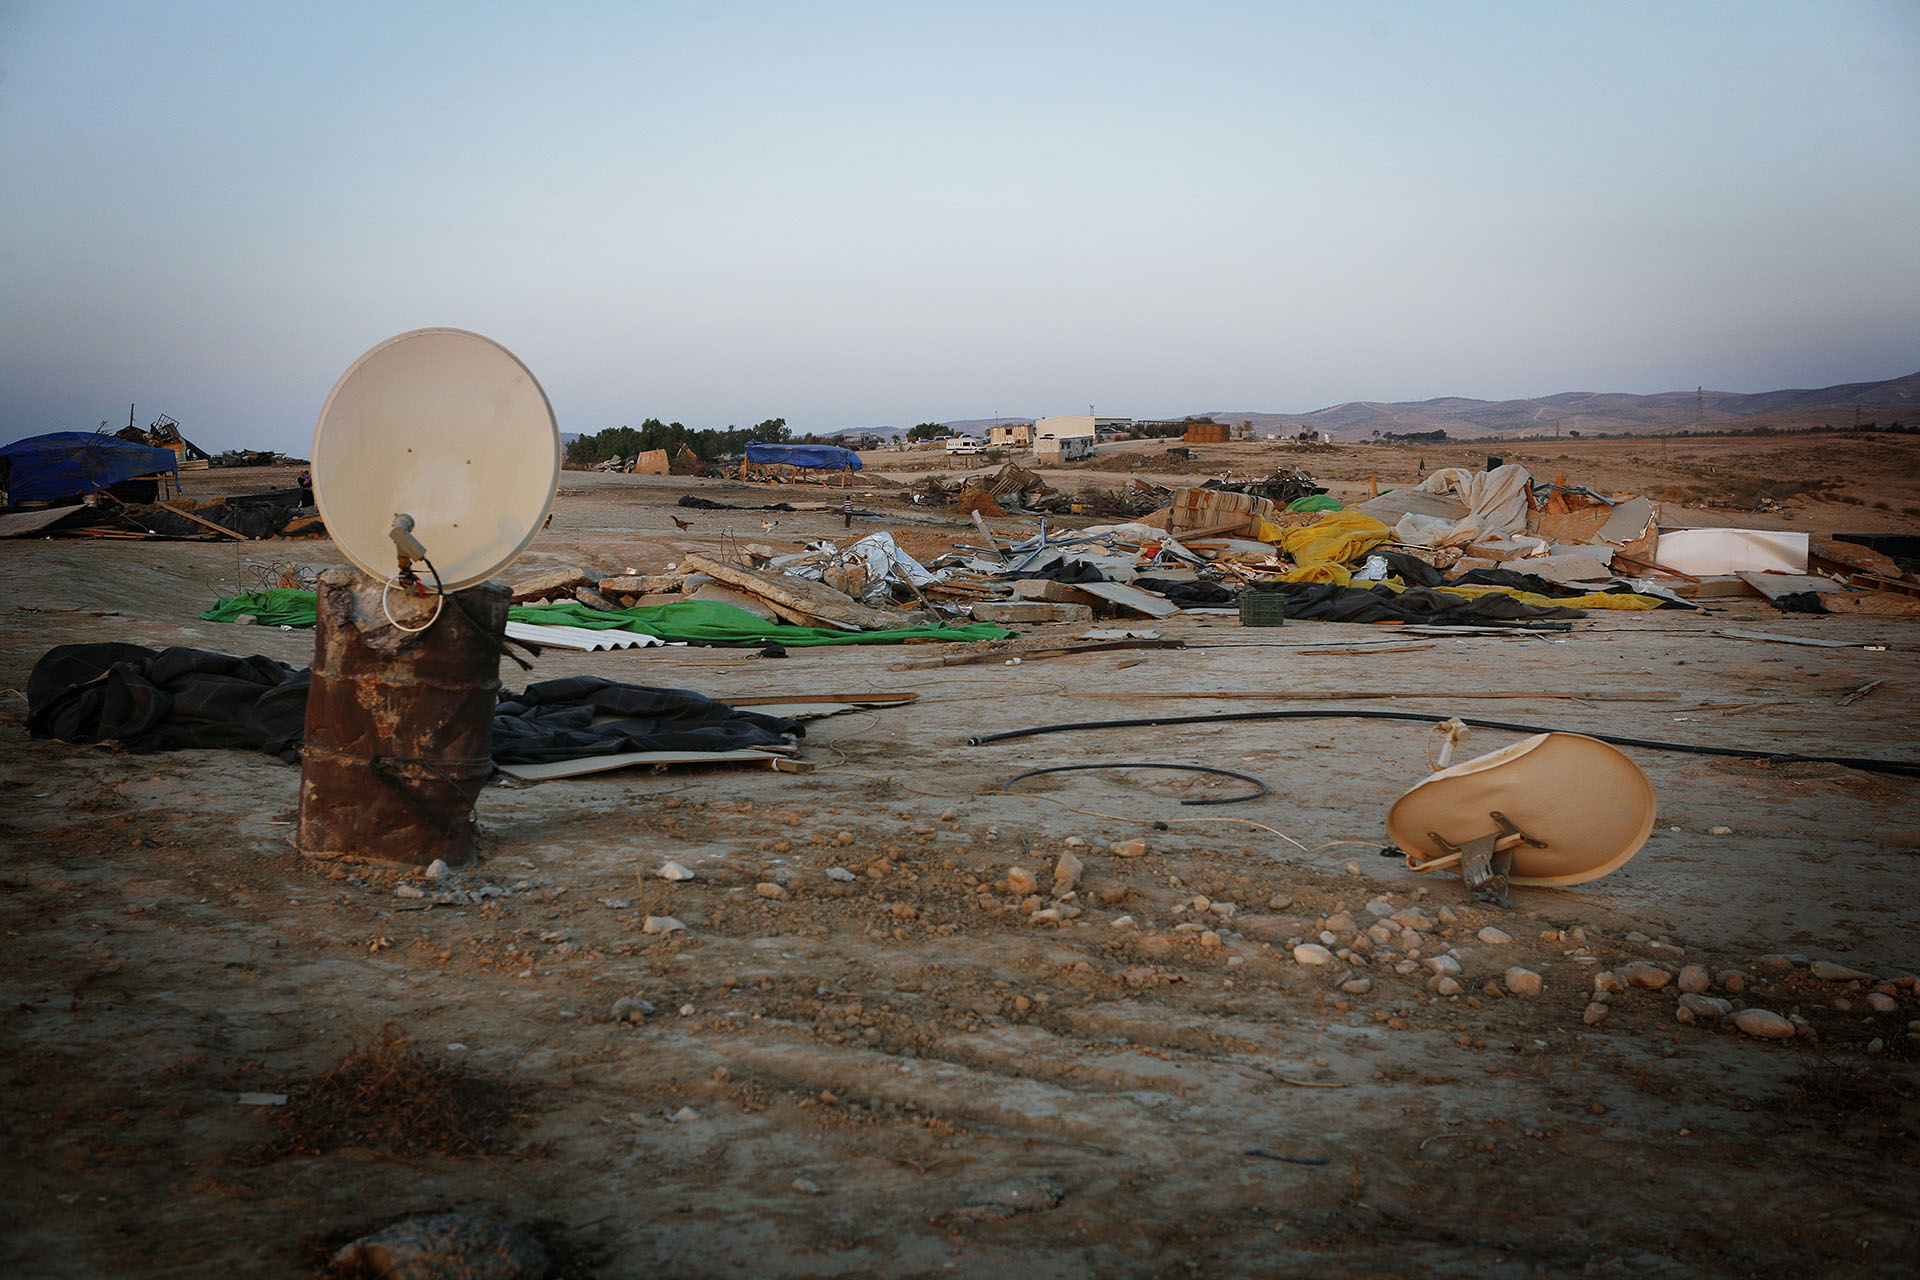 Al Araqib after repeated demolitions took place in the space of two months. Al Araqib, September 2010